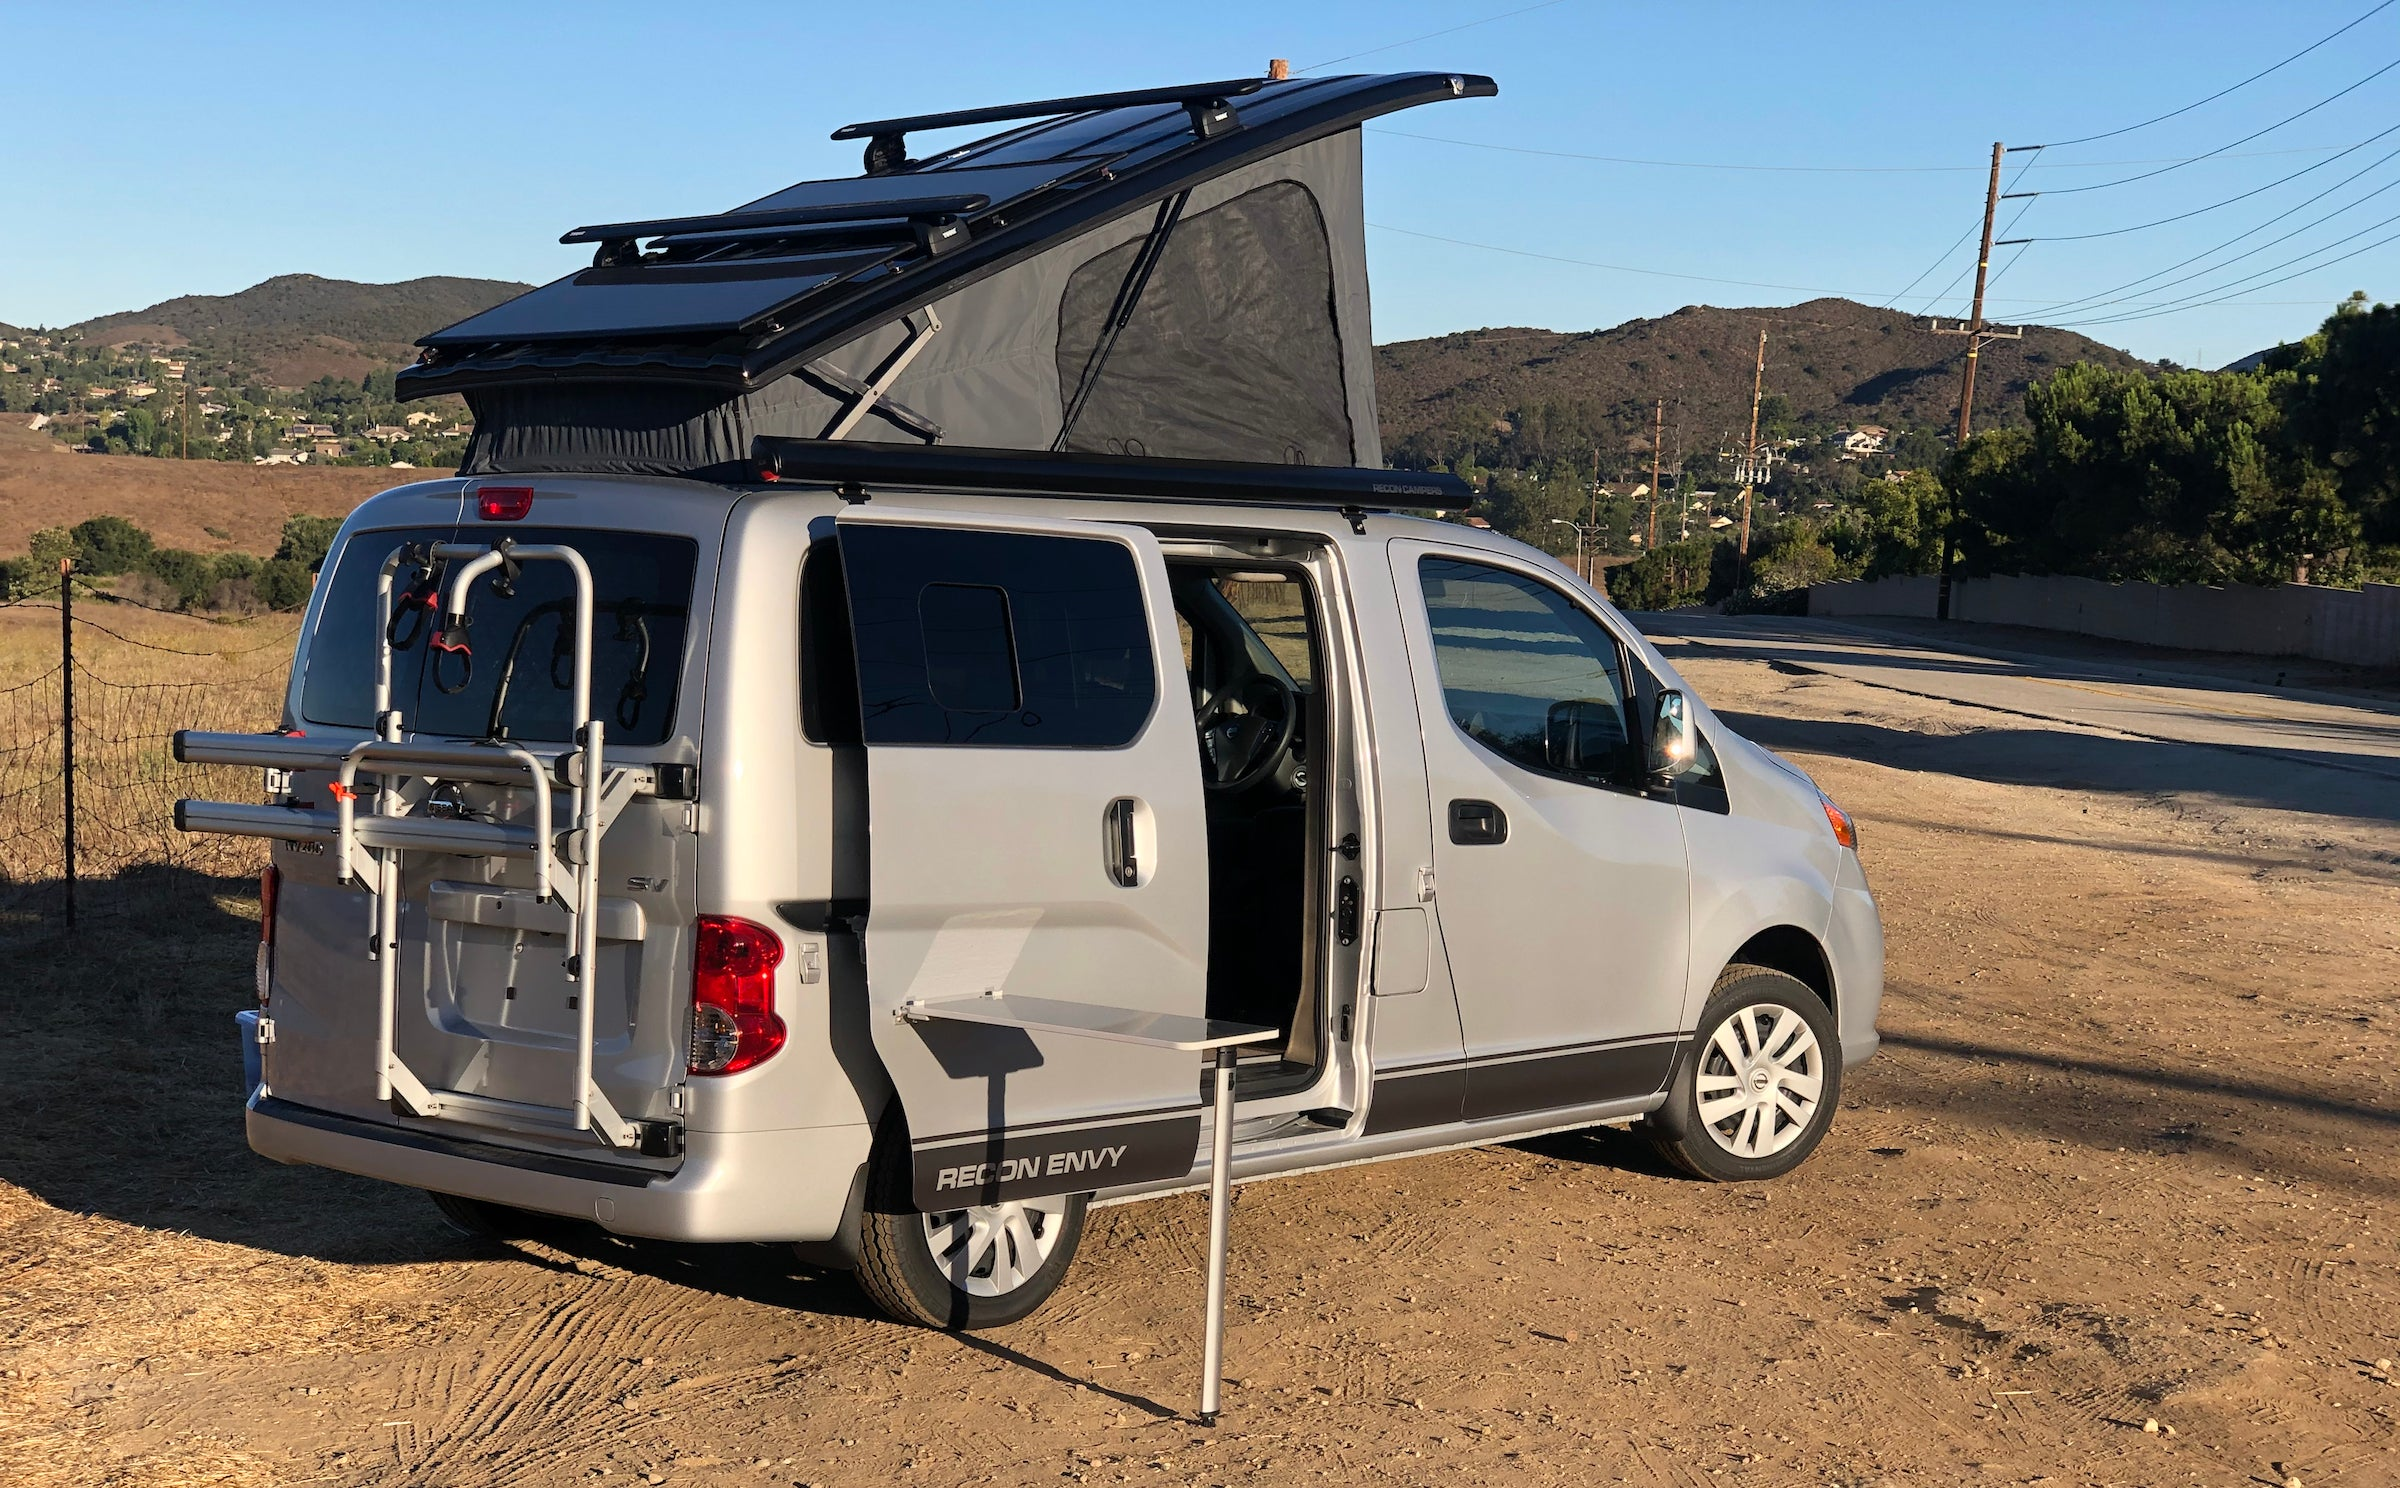 The van's pop-up sleeper and pullout table